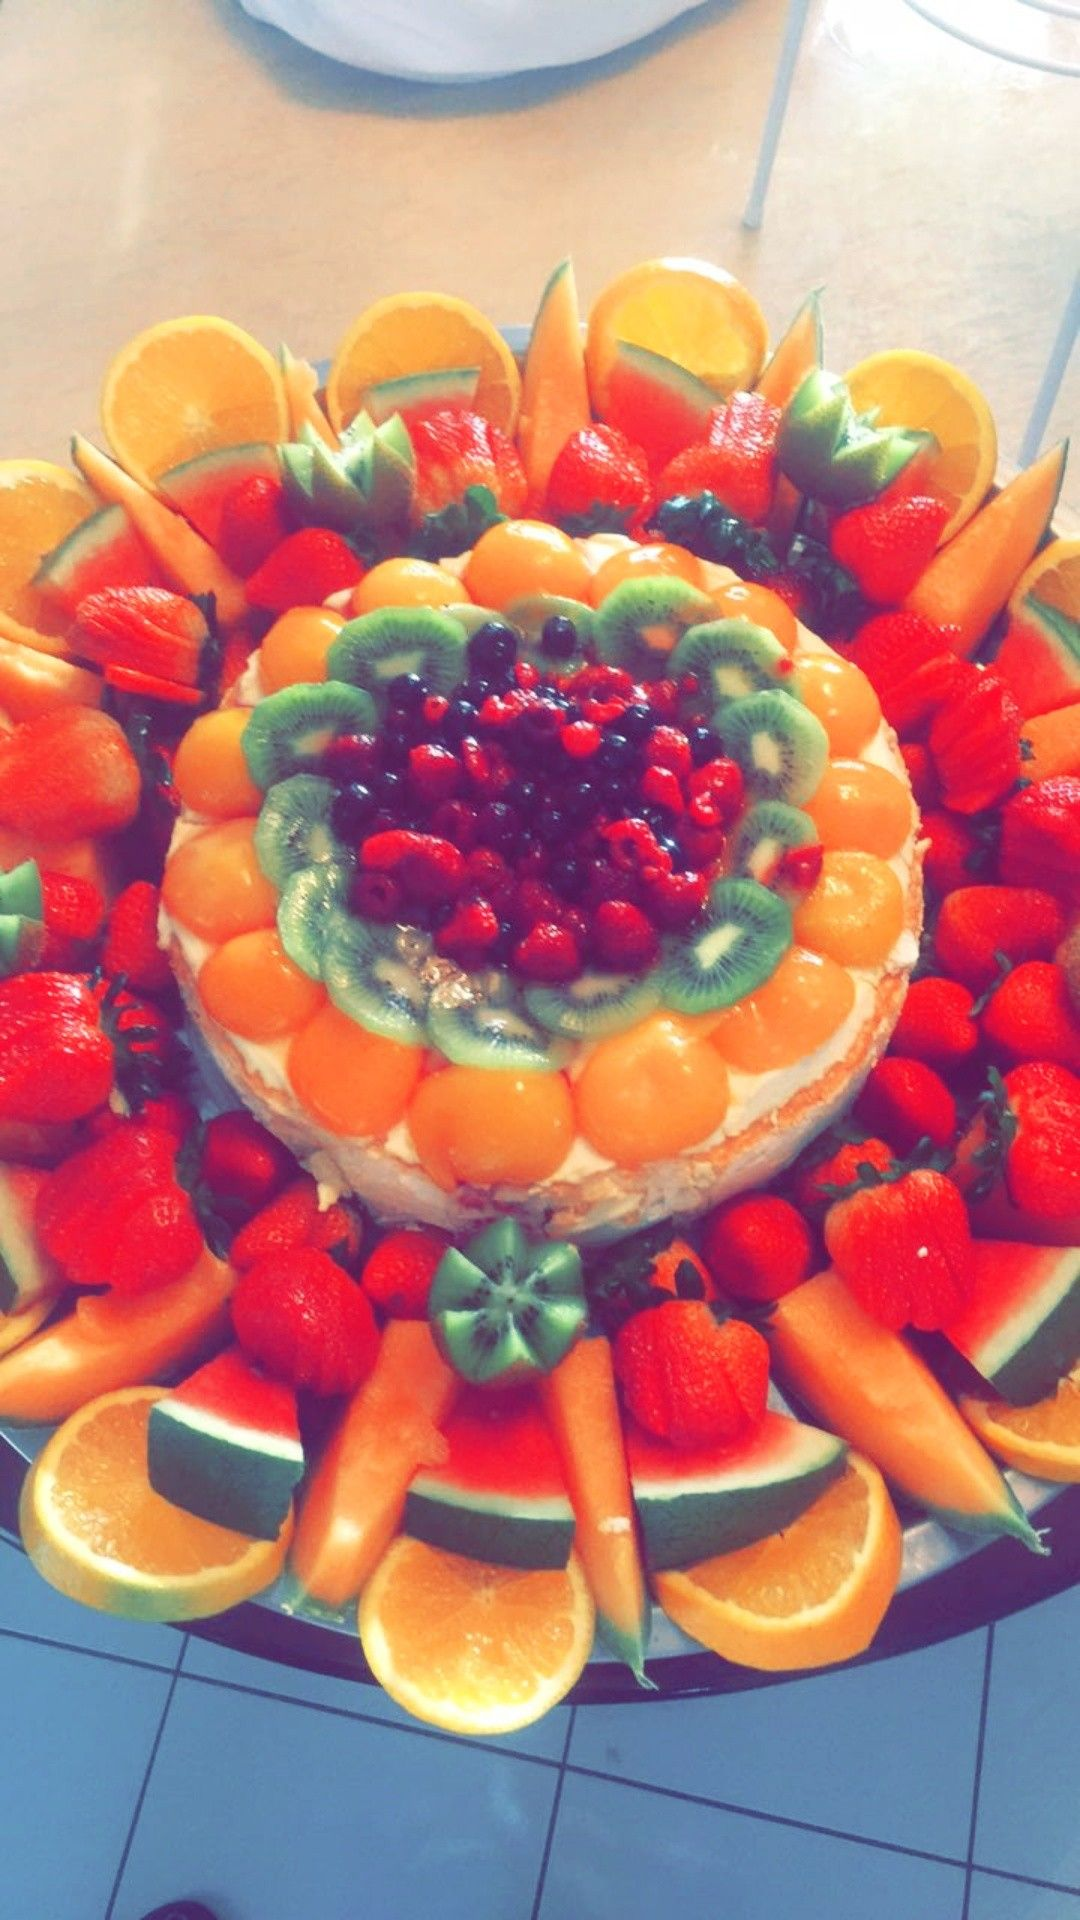 I Made This Home Made Fruit Platter In The Centre Is A Pavlova I Broight From Costco Pavlova Fruit Platter Platters